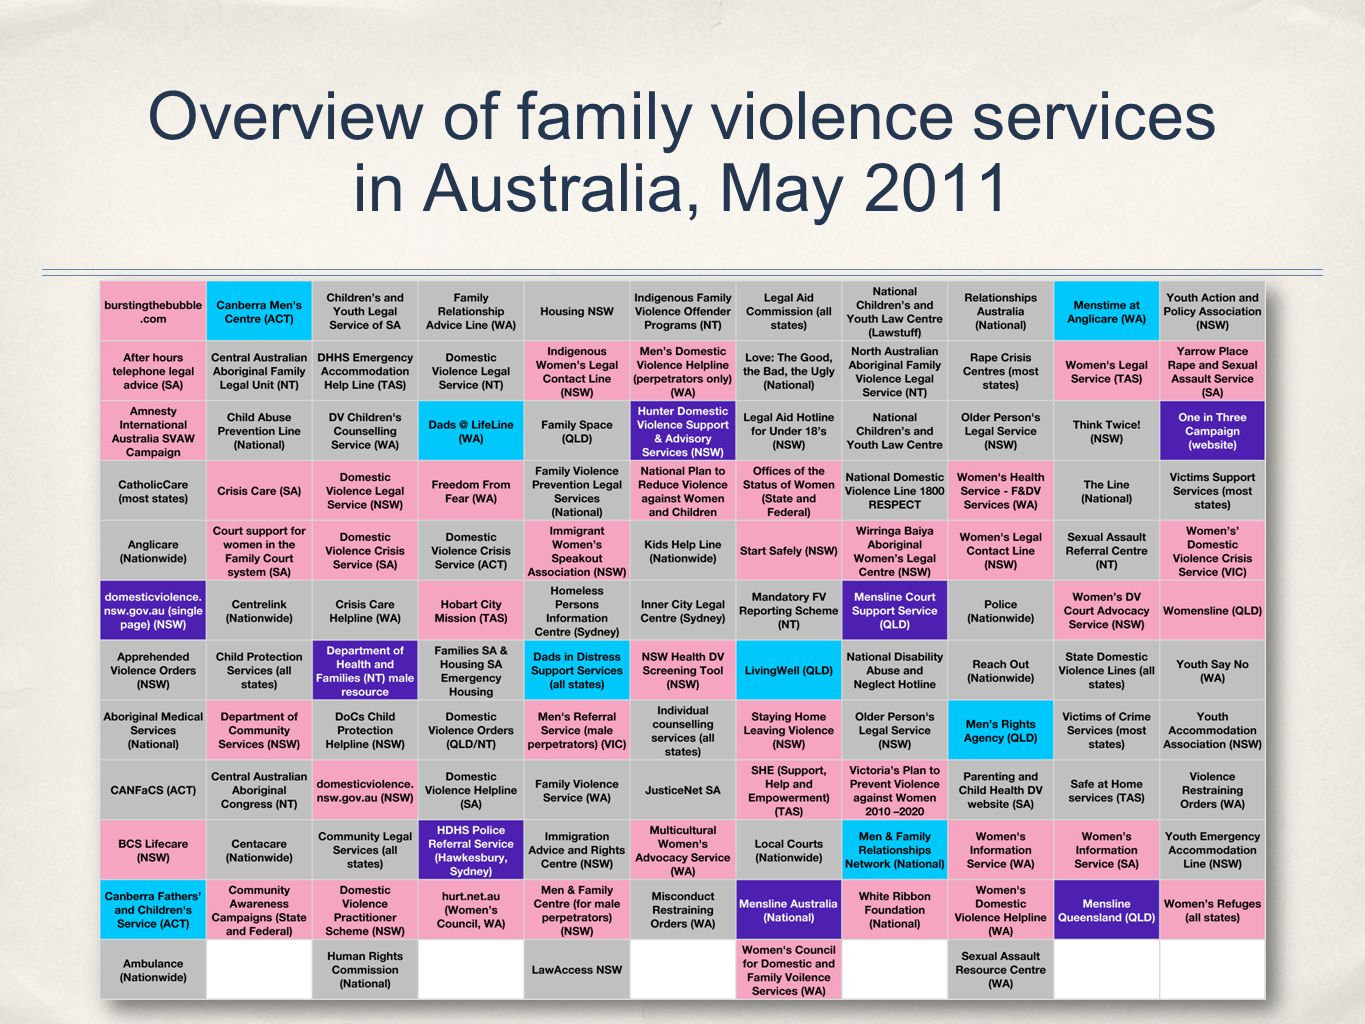 Overview of family violence services in Australia, May 2011